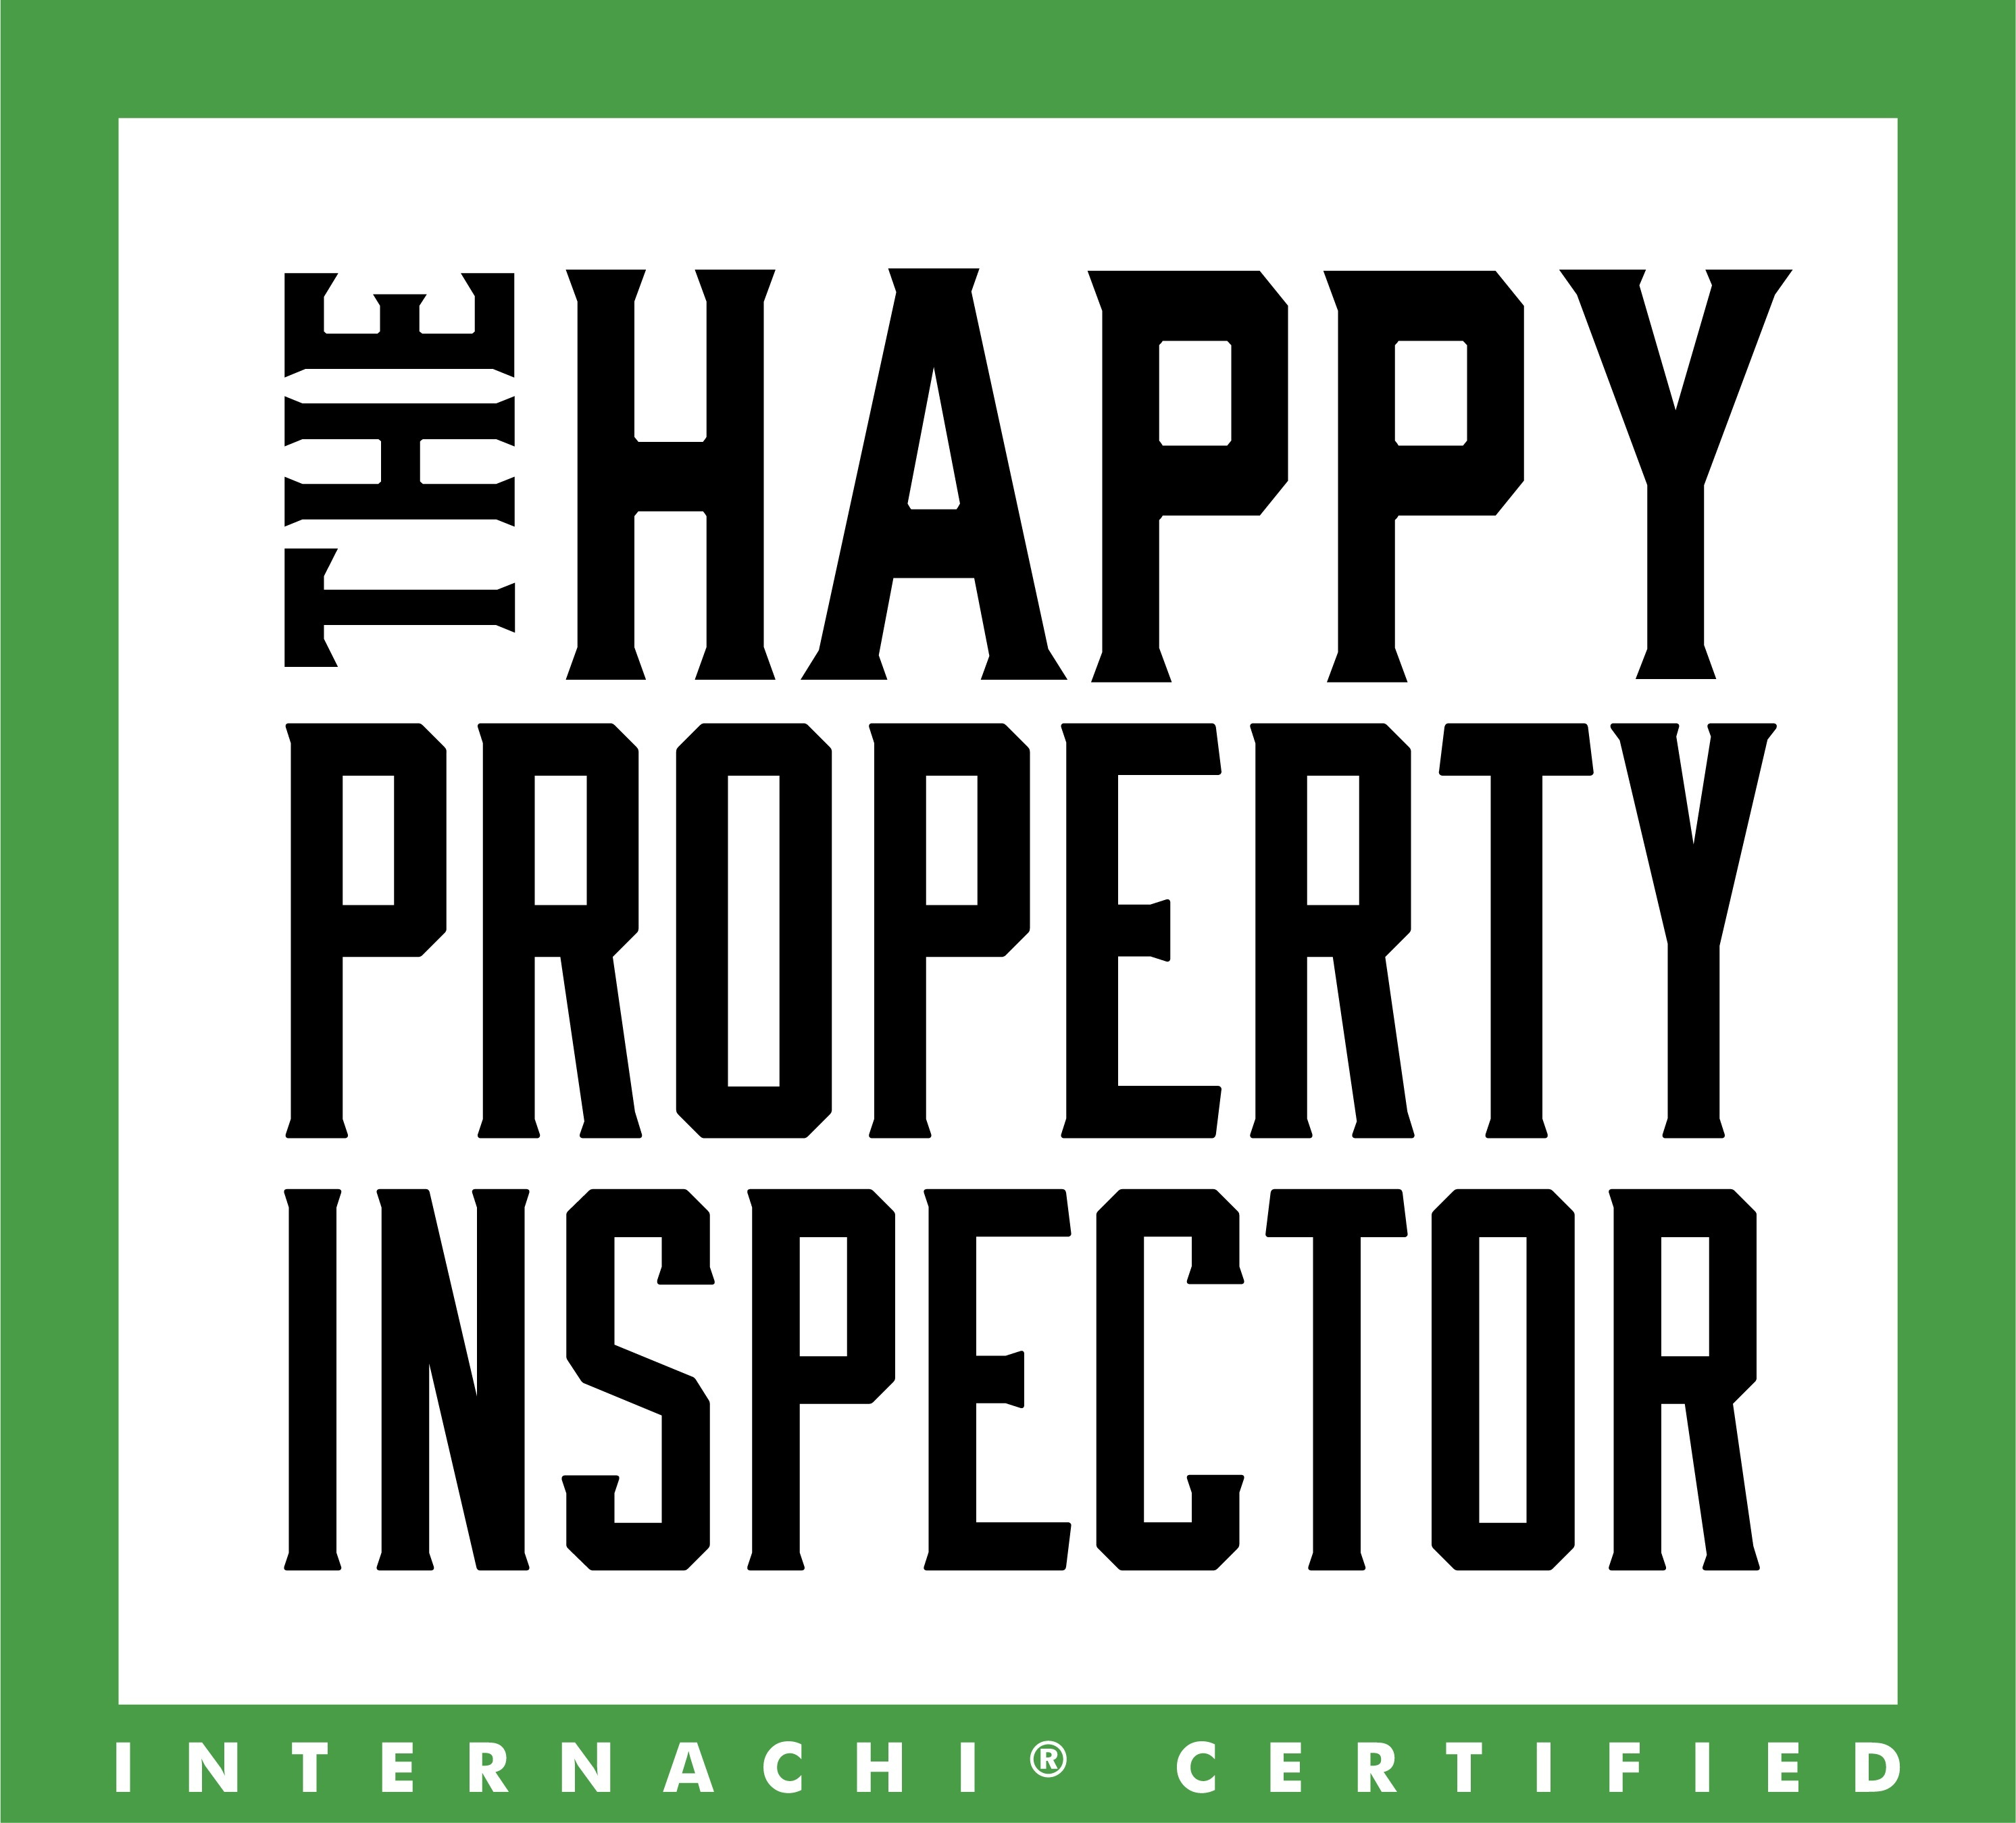 The happy inspector logo